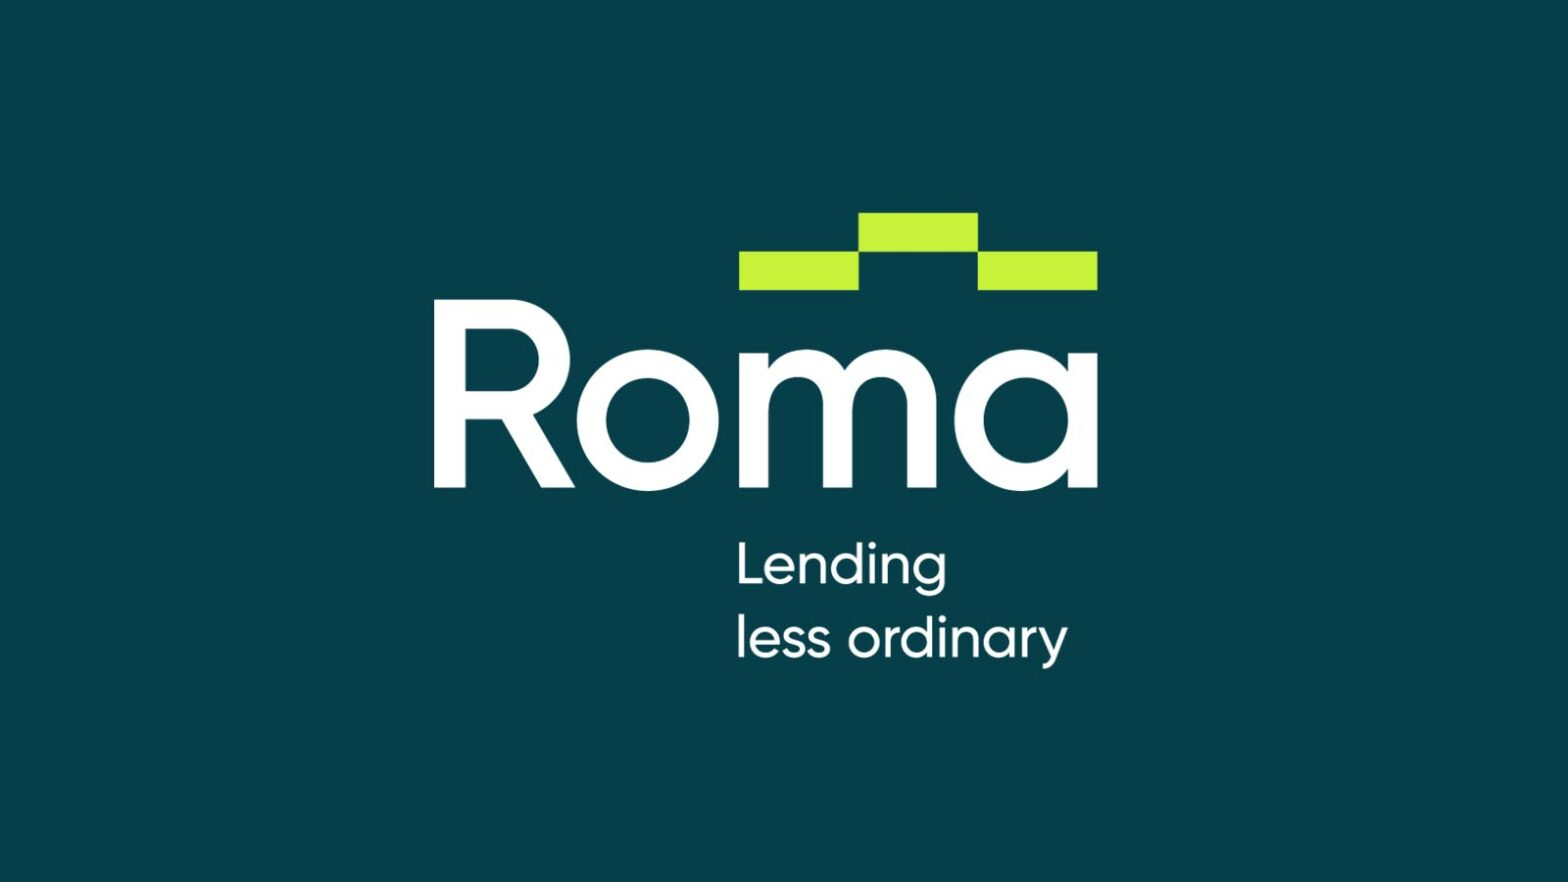 Roma Finance rebrands and enhances criteria